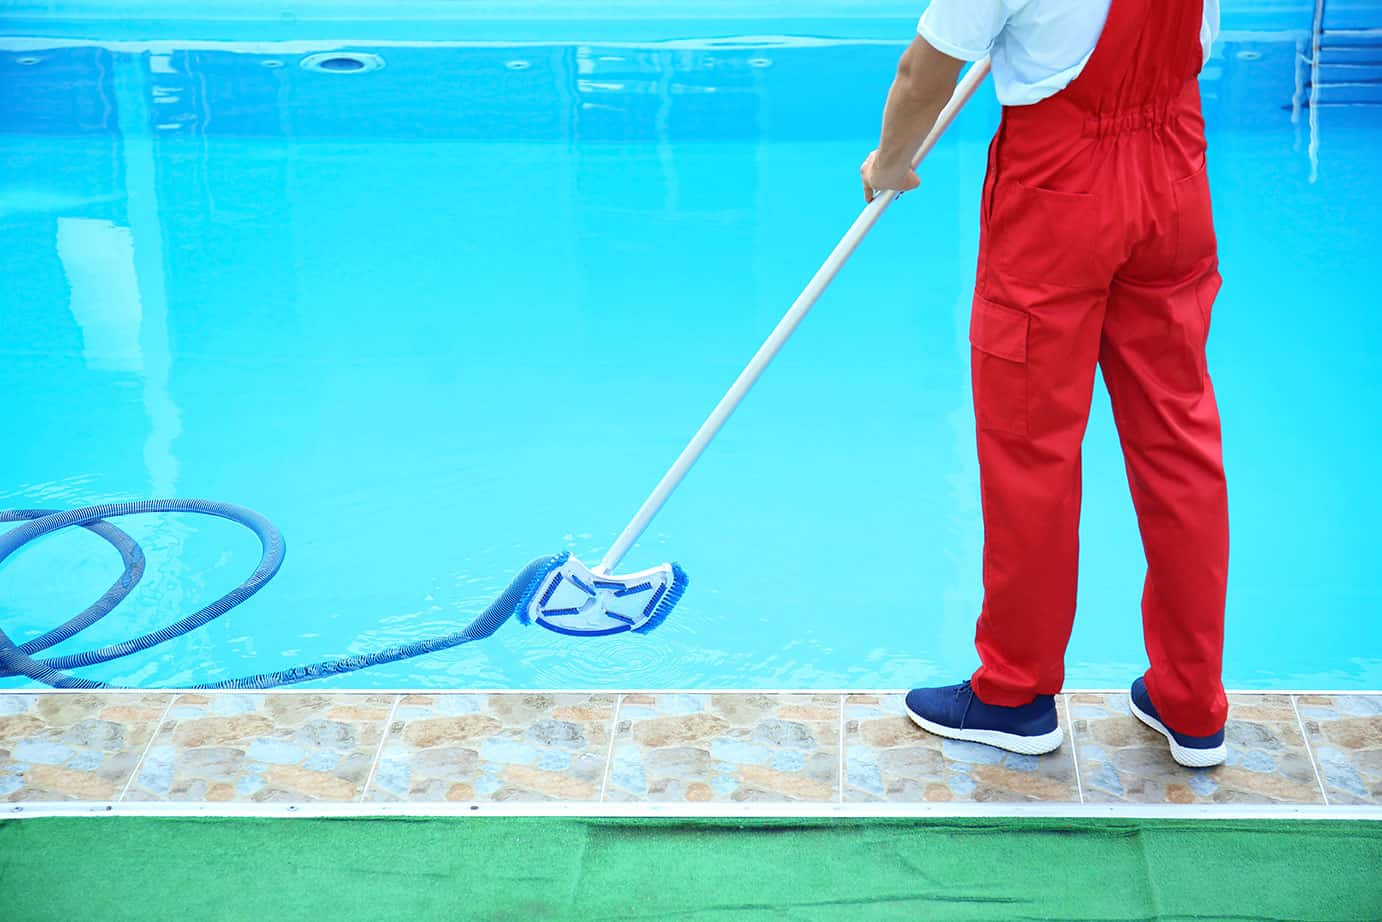 Pool cleaner at work